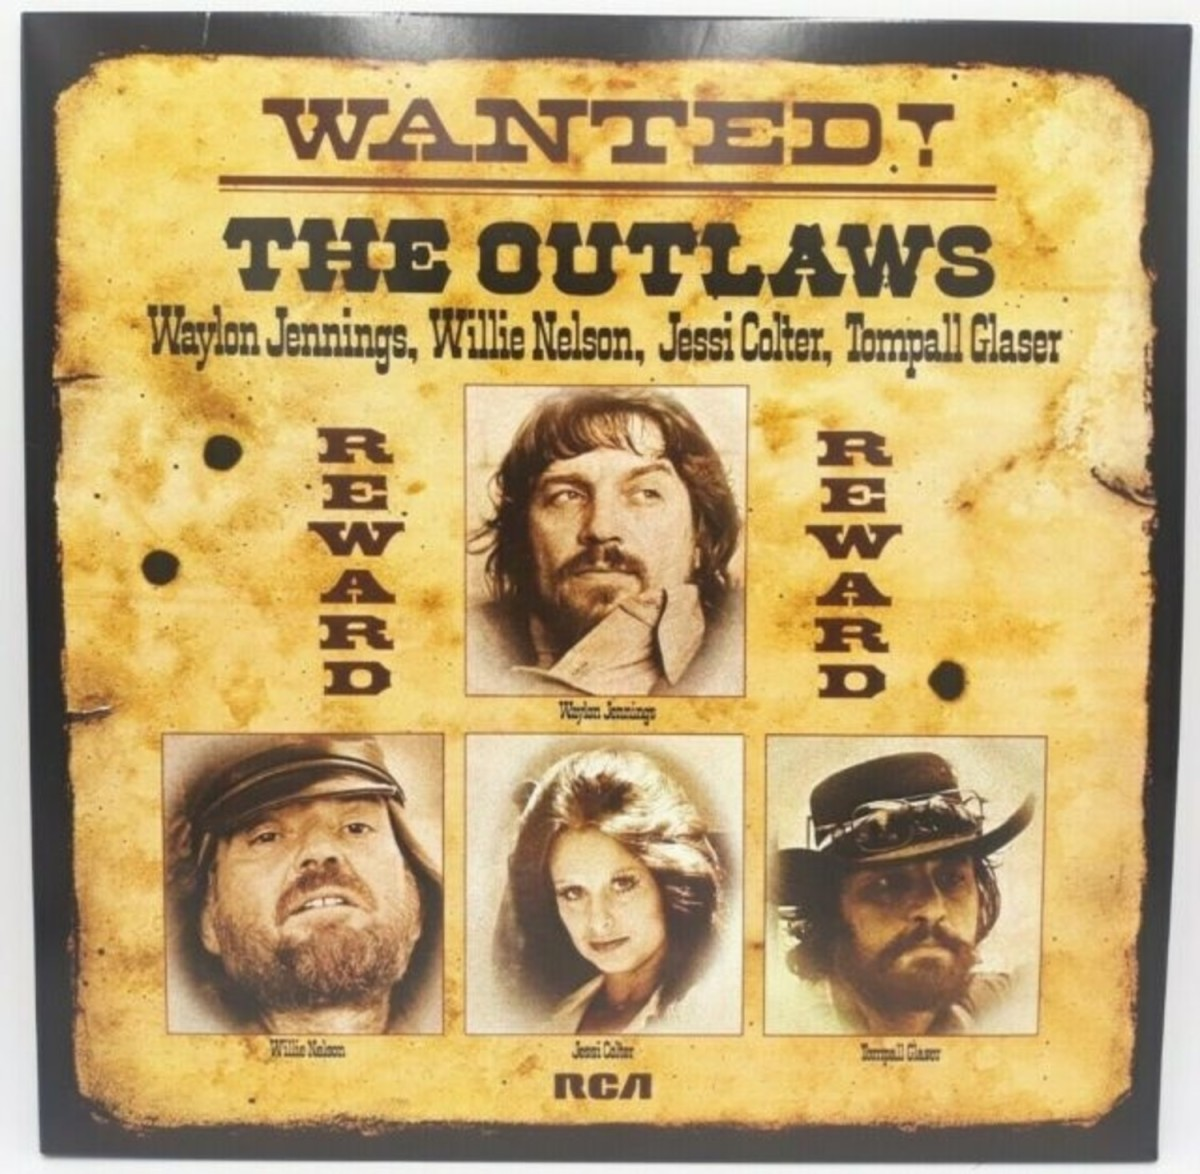 Today, being a musical outlaw can be (legally) quite lucrative